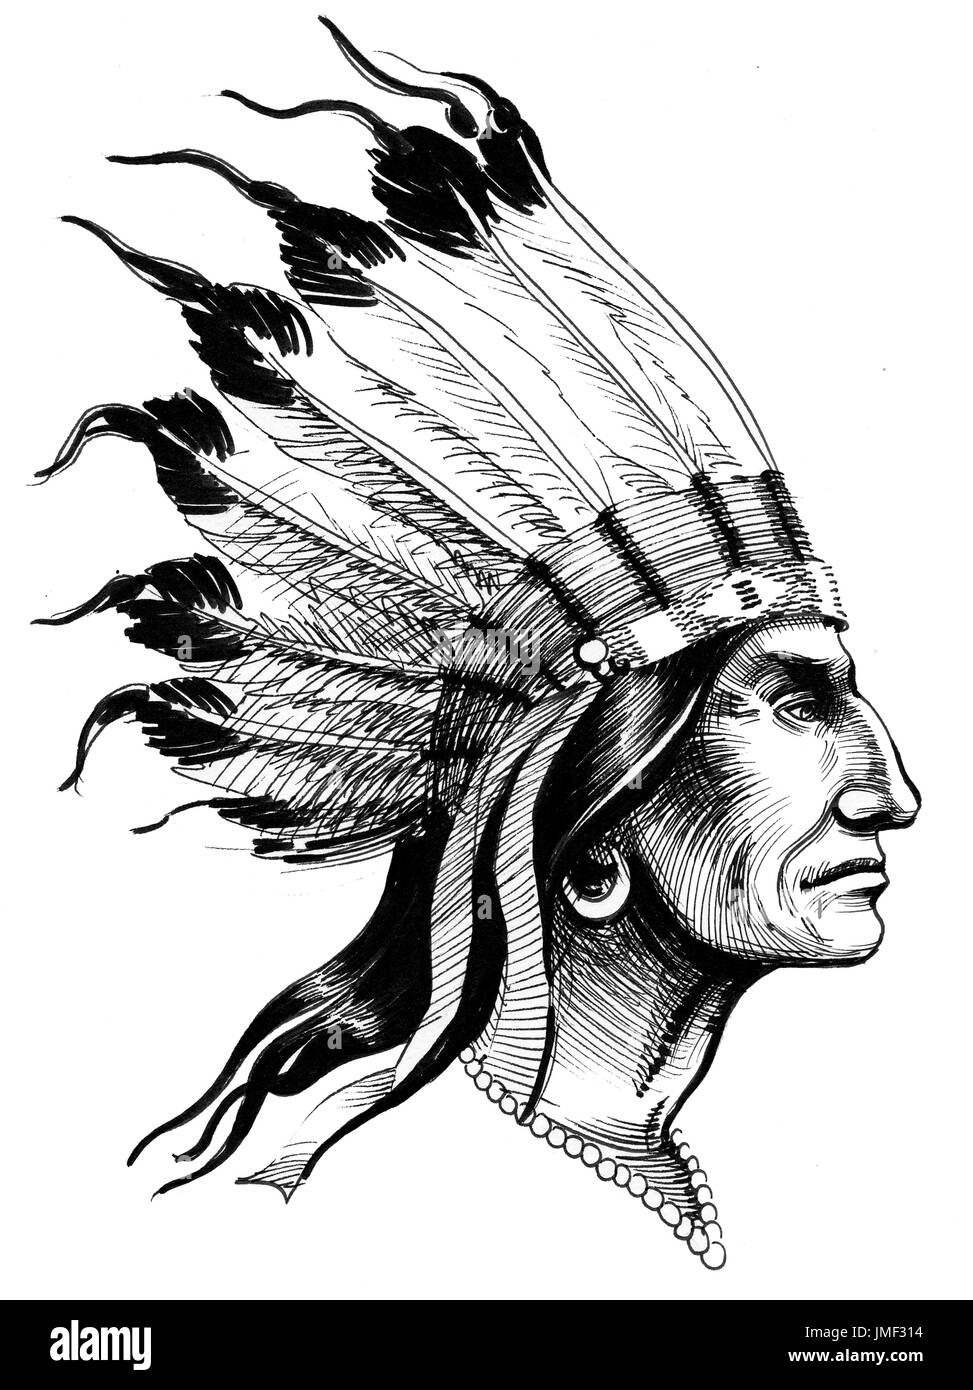 Native American - Stock Image